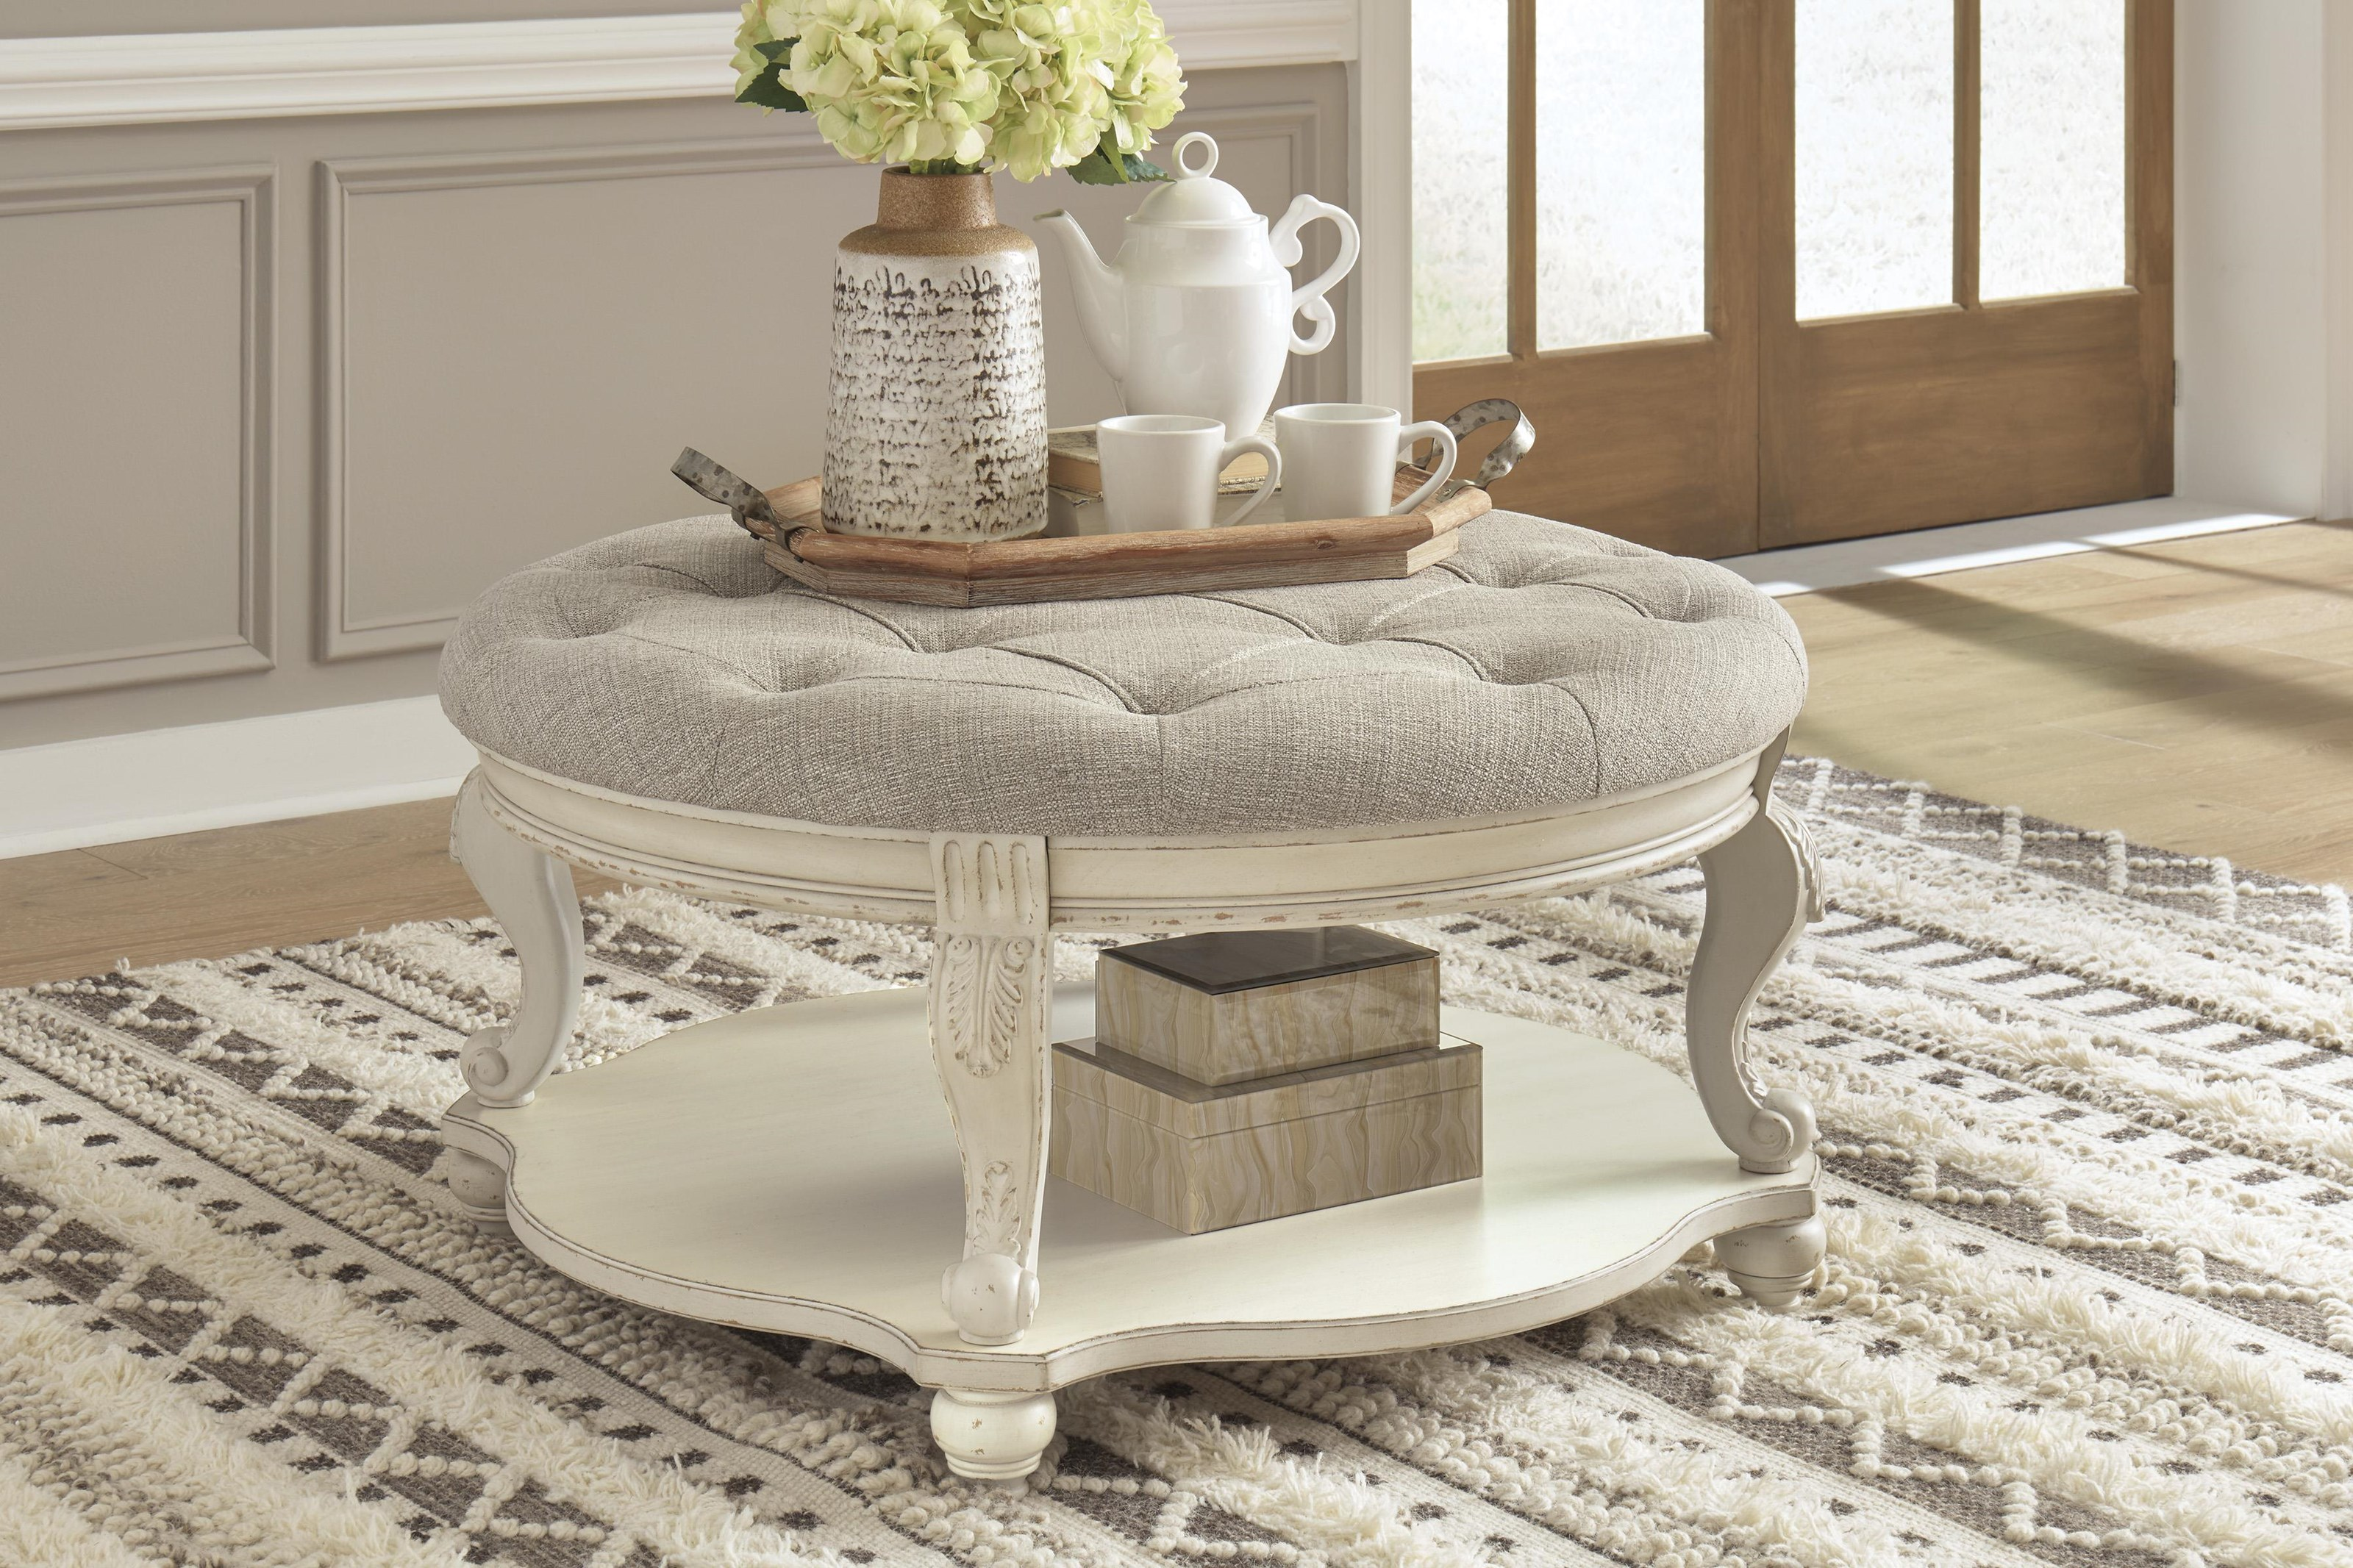 Realyn 3 Piece Coffee Table Set by Signature Design by Ashley at Sam Levitz Furniture